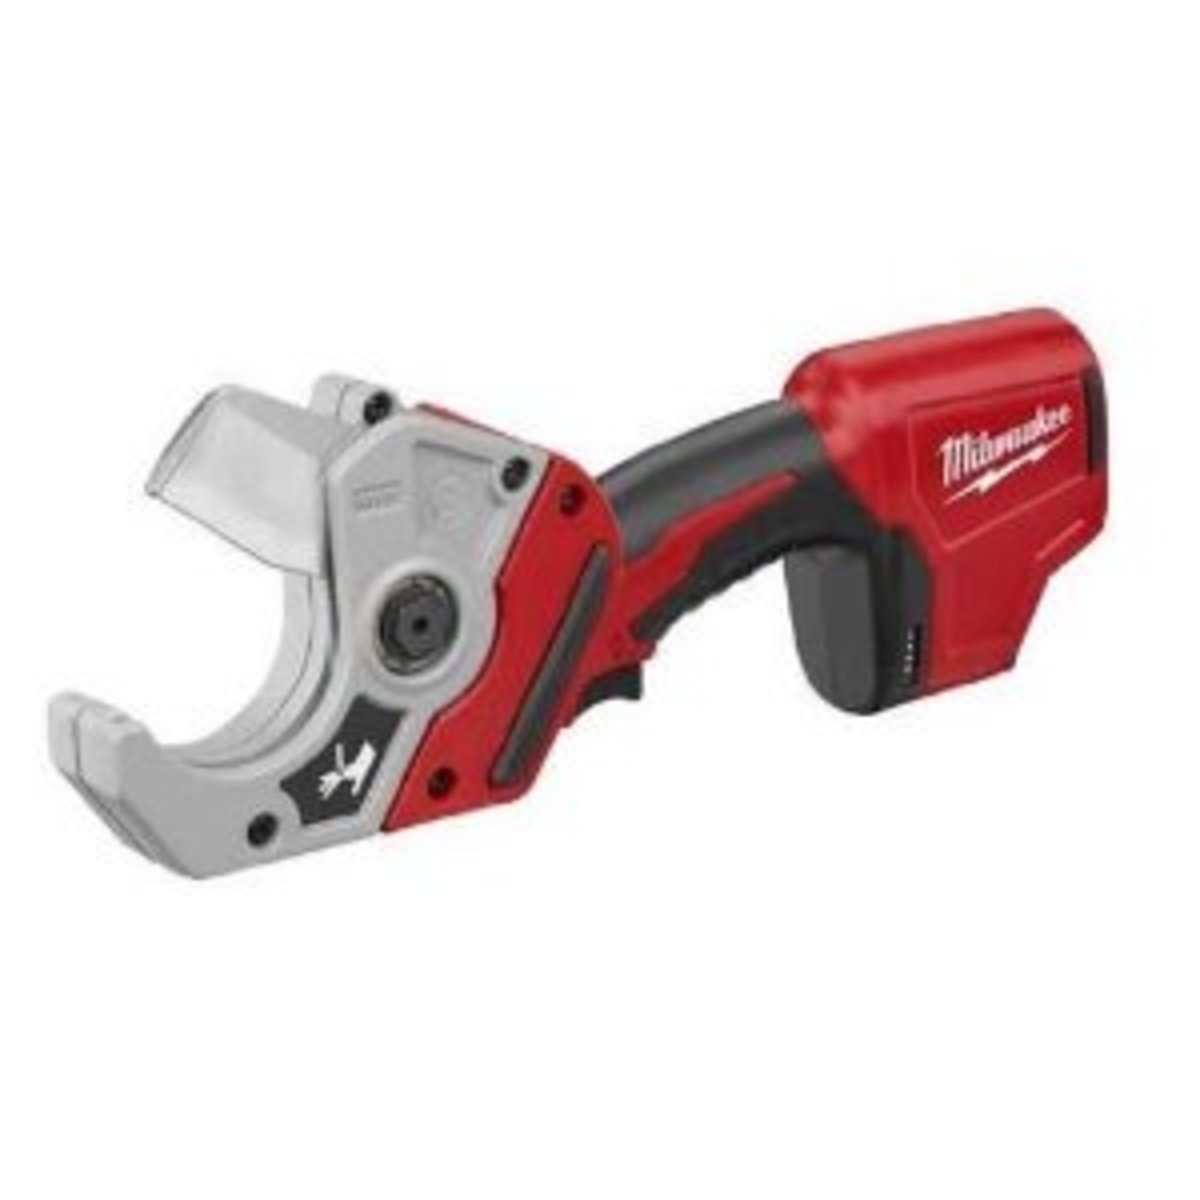 Best 5 Pvc Pipe Cutters Dengarden